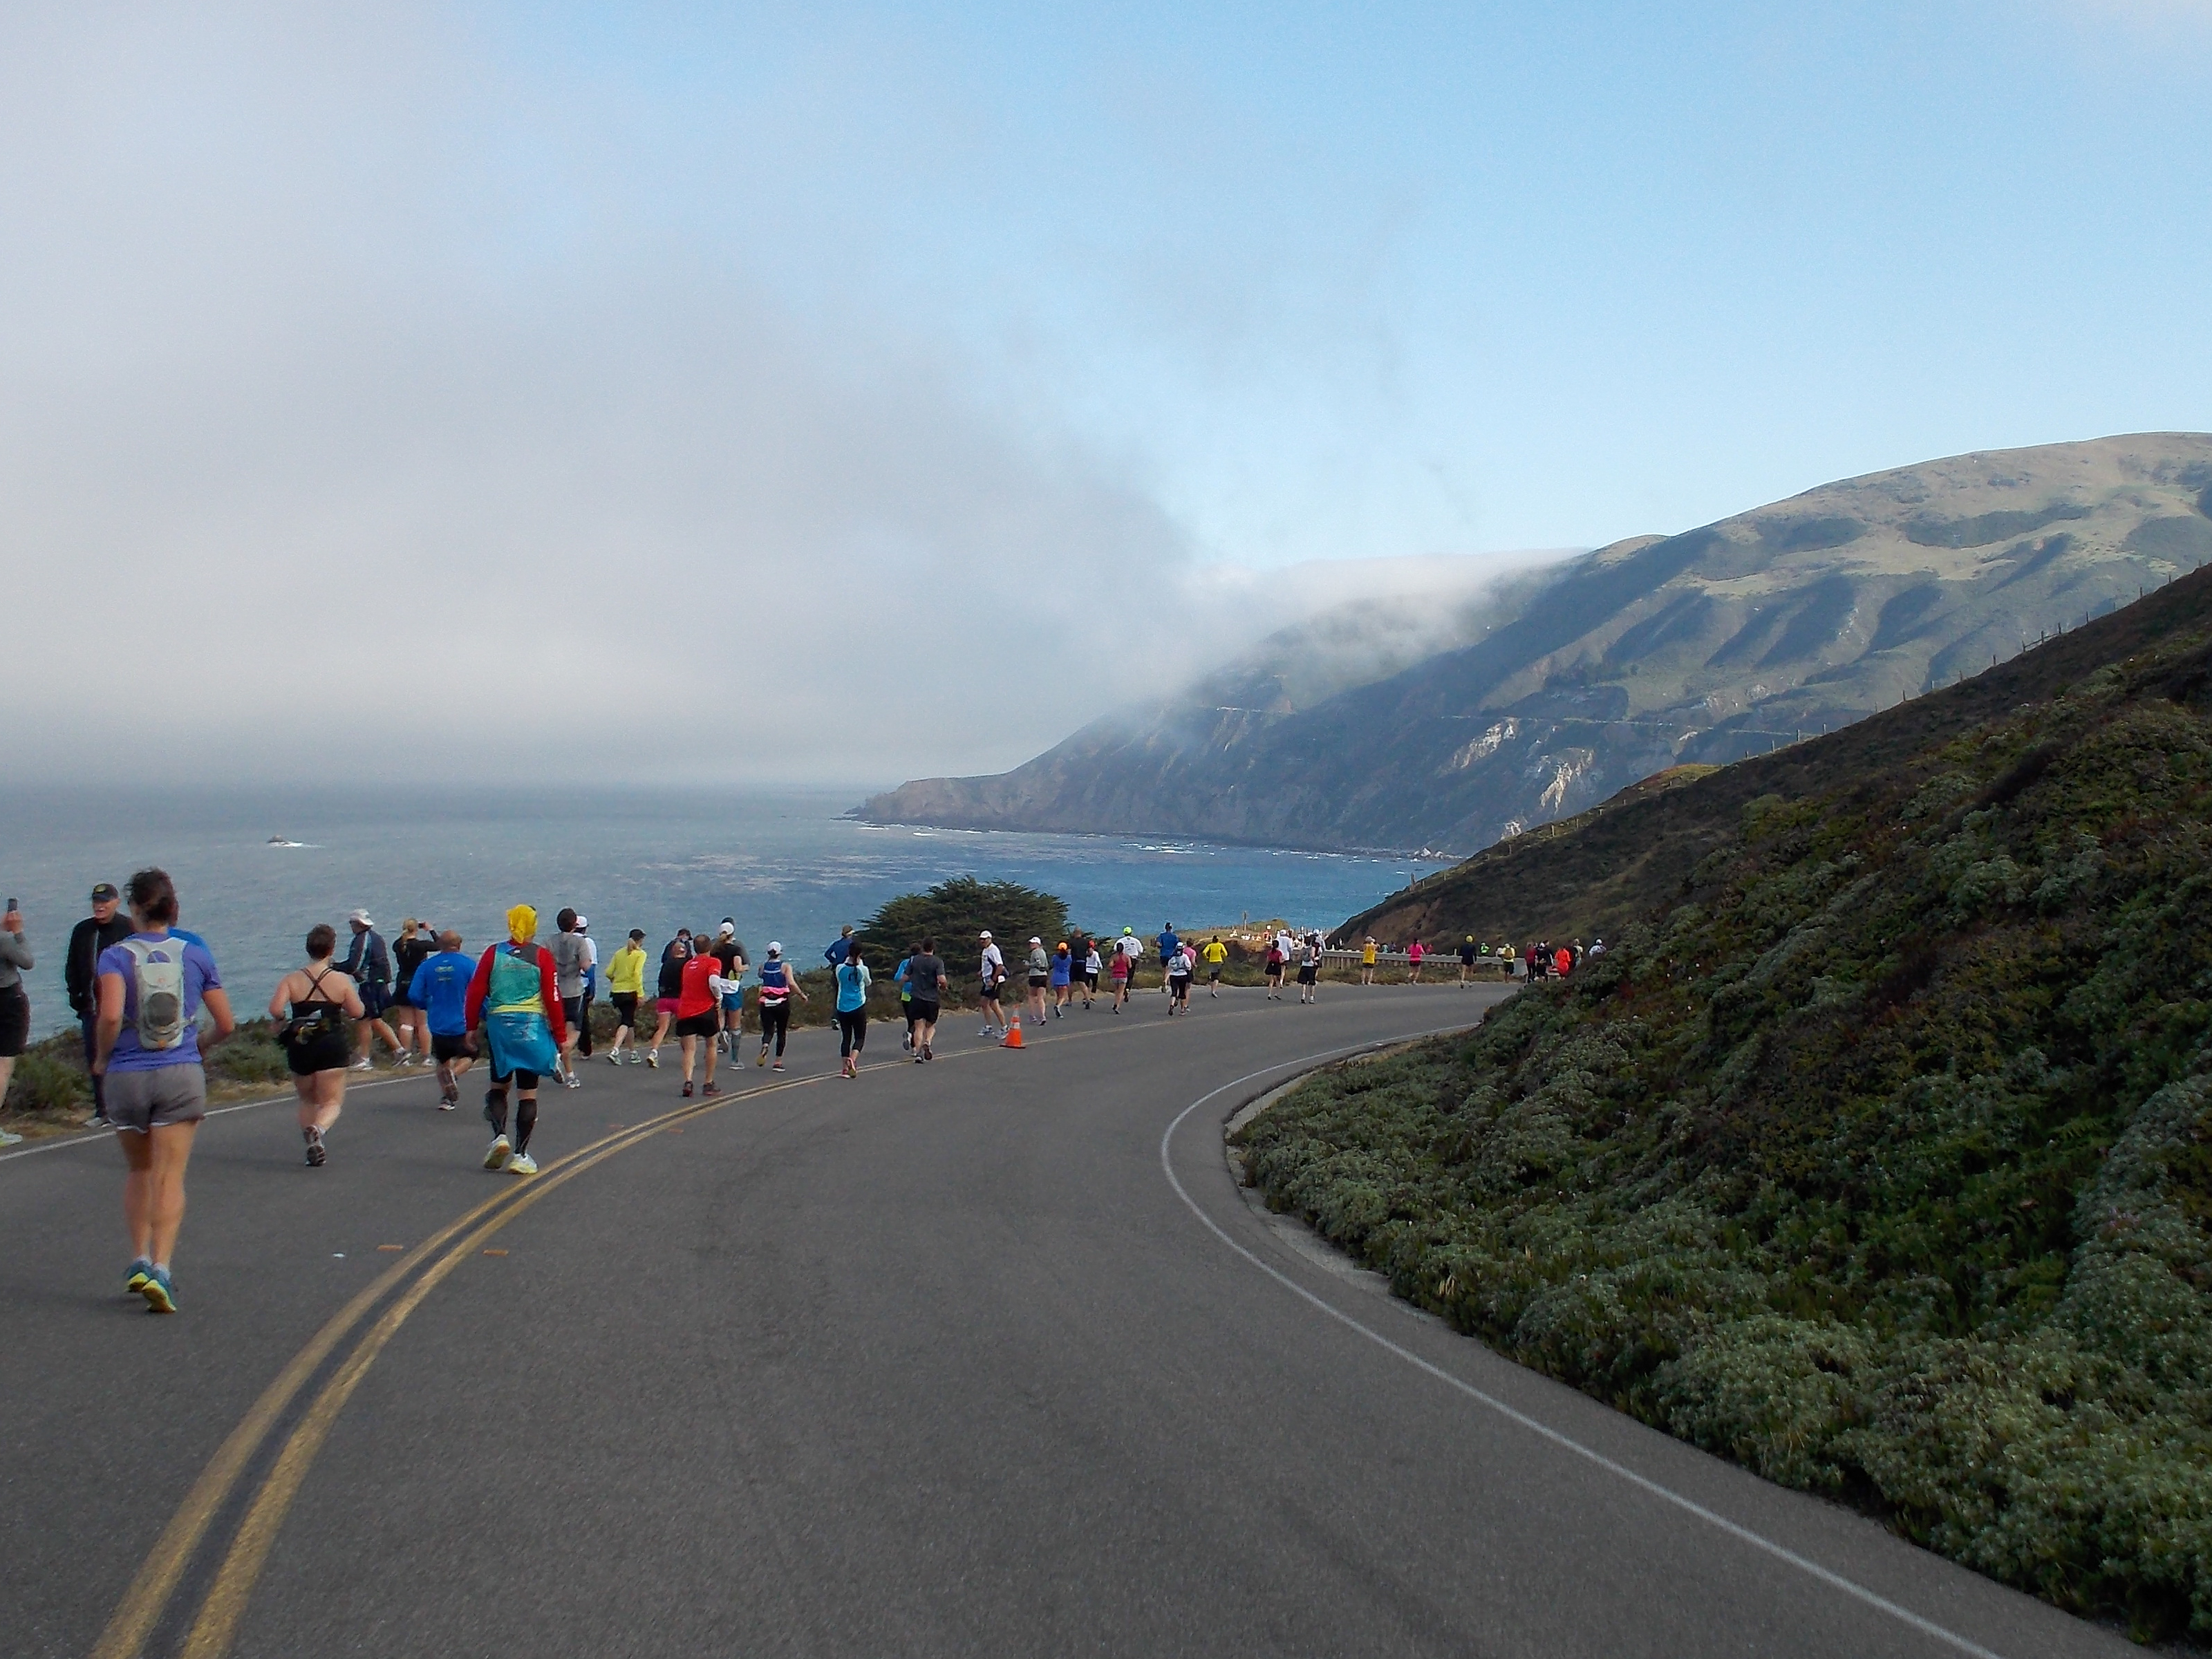 Runners on the course of the Big Sur Marathon